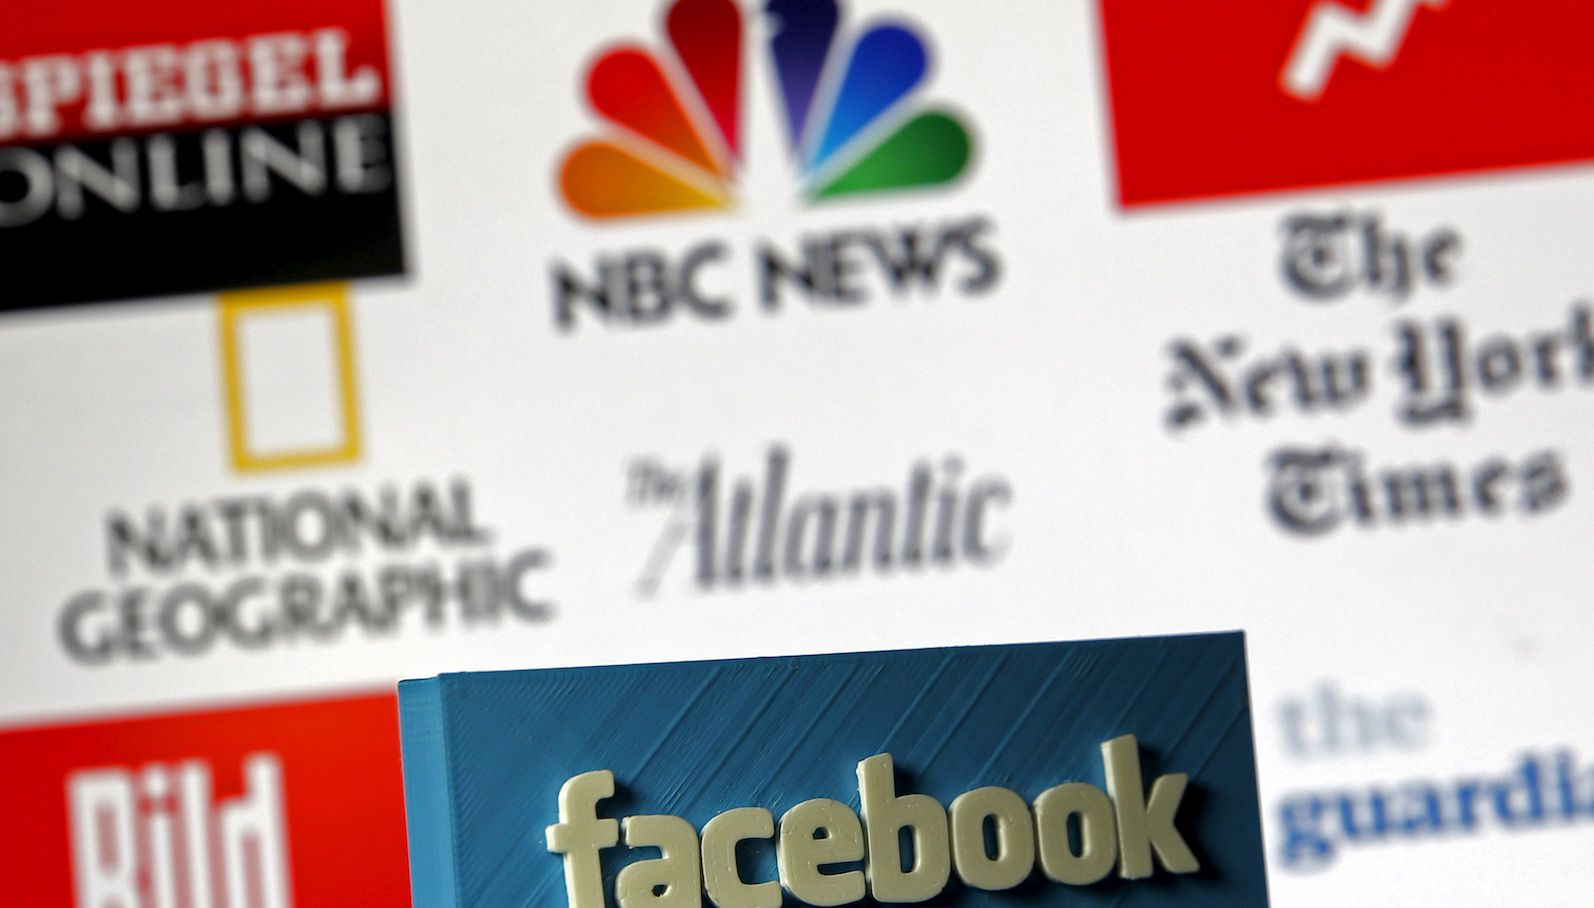 """A 3D-printed Facebook logo is seen in front of logos of news publishers it has tied up with, in this picture illustration made in Zenica, Bosnia and Herzegovina on May 15, 2015. Facebook Inc tied up with nine news publishers to launch """"Instant Articles"""" that will let them publish articles directly to the social network's mobile news feeds. Instant Articles will let stories load more than 10 times faster than standard mobile web articles and will include content from publishers such as the New York Times, BuzzFeed and National Geographic, Facebook said in a blog post on its website. The other launch partners for Instant Articles are NBC, The Atlantic, The Guardian, BBC News, Spiegel and Bild, Facebook said.    REUTERS/Dado Ruvic - RTX1D3H3"""